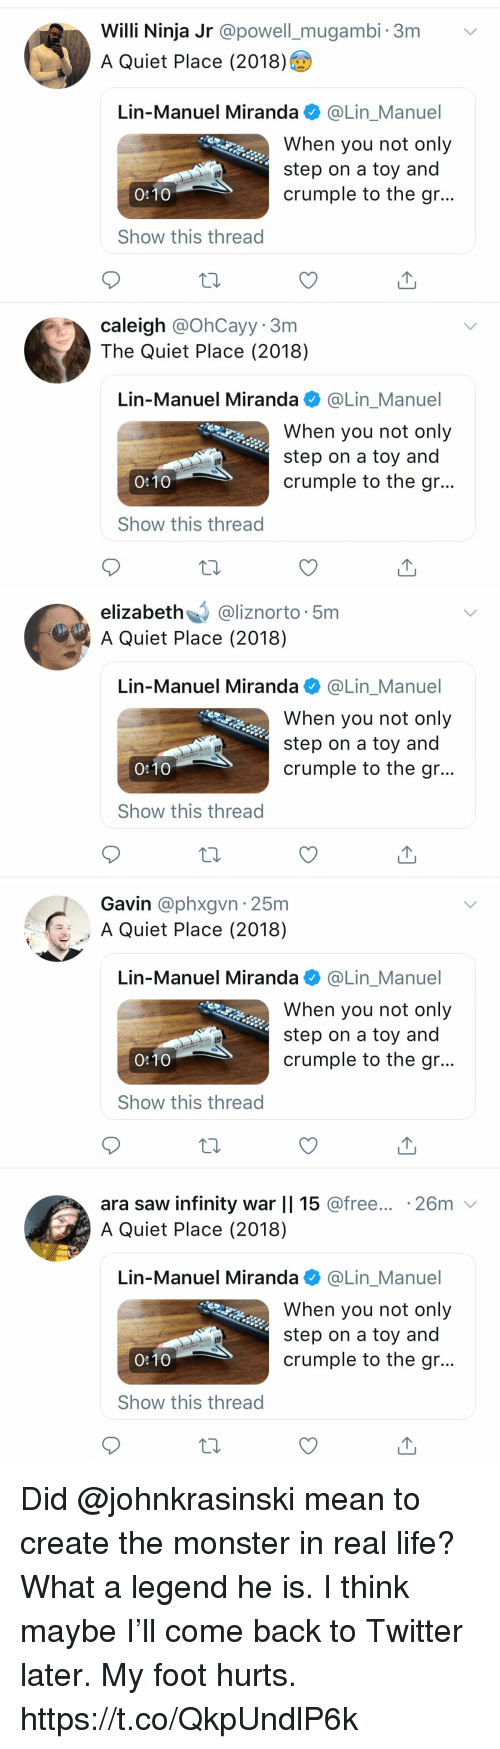 Powell: Willi Ninja Jr @powell_mugambi. 3m v  A Quiet Place (2018)  Lin-Manuel Miranda @Lin_Manuel  When you not only  step on a toy and  crumple to the gr..  US  0:10  Show this thread  caleigh @OhCayy. 3m  The Quiet Place (2018)  Lin-Manuel Miranda @Lin_Manuel  When you not only  step on a toy and  crumple to the gr...  US  0:10  Show this thread   elizabeth@liznorto 5m  A Quiet Place (2018)  Lin-Manuel Miranda e》 @Lin.Manuel  When you not only  step on a toy and  crumple to the gr...  US  0:10  Show this thread   Gavin @phxgvn 25m  A Quiet Place (2018)  Lin-Manuel Miranda@Lin_Manuel  When you not only  step on a toy and  crumple to the gr..  US  0:10  Show this thread   ara saw infinity war || 15 @free... .26m v  A Quiet Place (2018)  Lin-Manuel Miranda @Lin_Manuel  When you not only  step on a toy and  crumple to the gr...  US  0:10  Show this thread Did @johnkrasinski mean to create the monster in real life? What a legend he is.  I think maybe I'll come back to Twitter later. My foot hurts. https://t.co/QkpUndlP6k